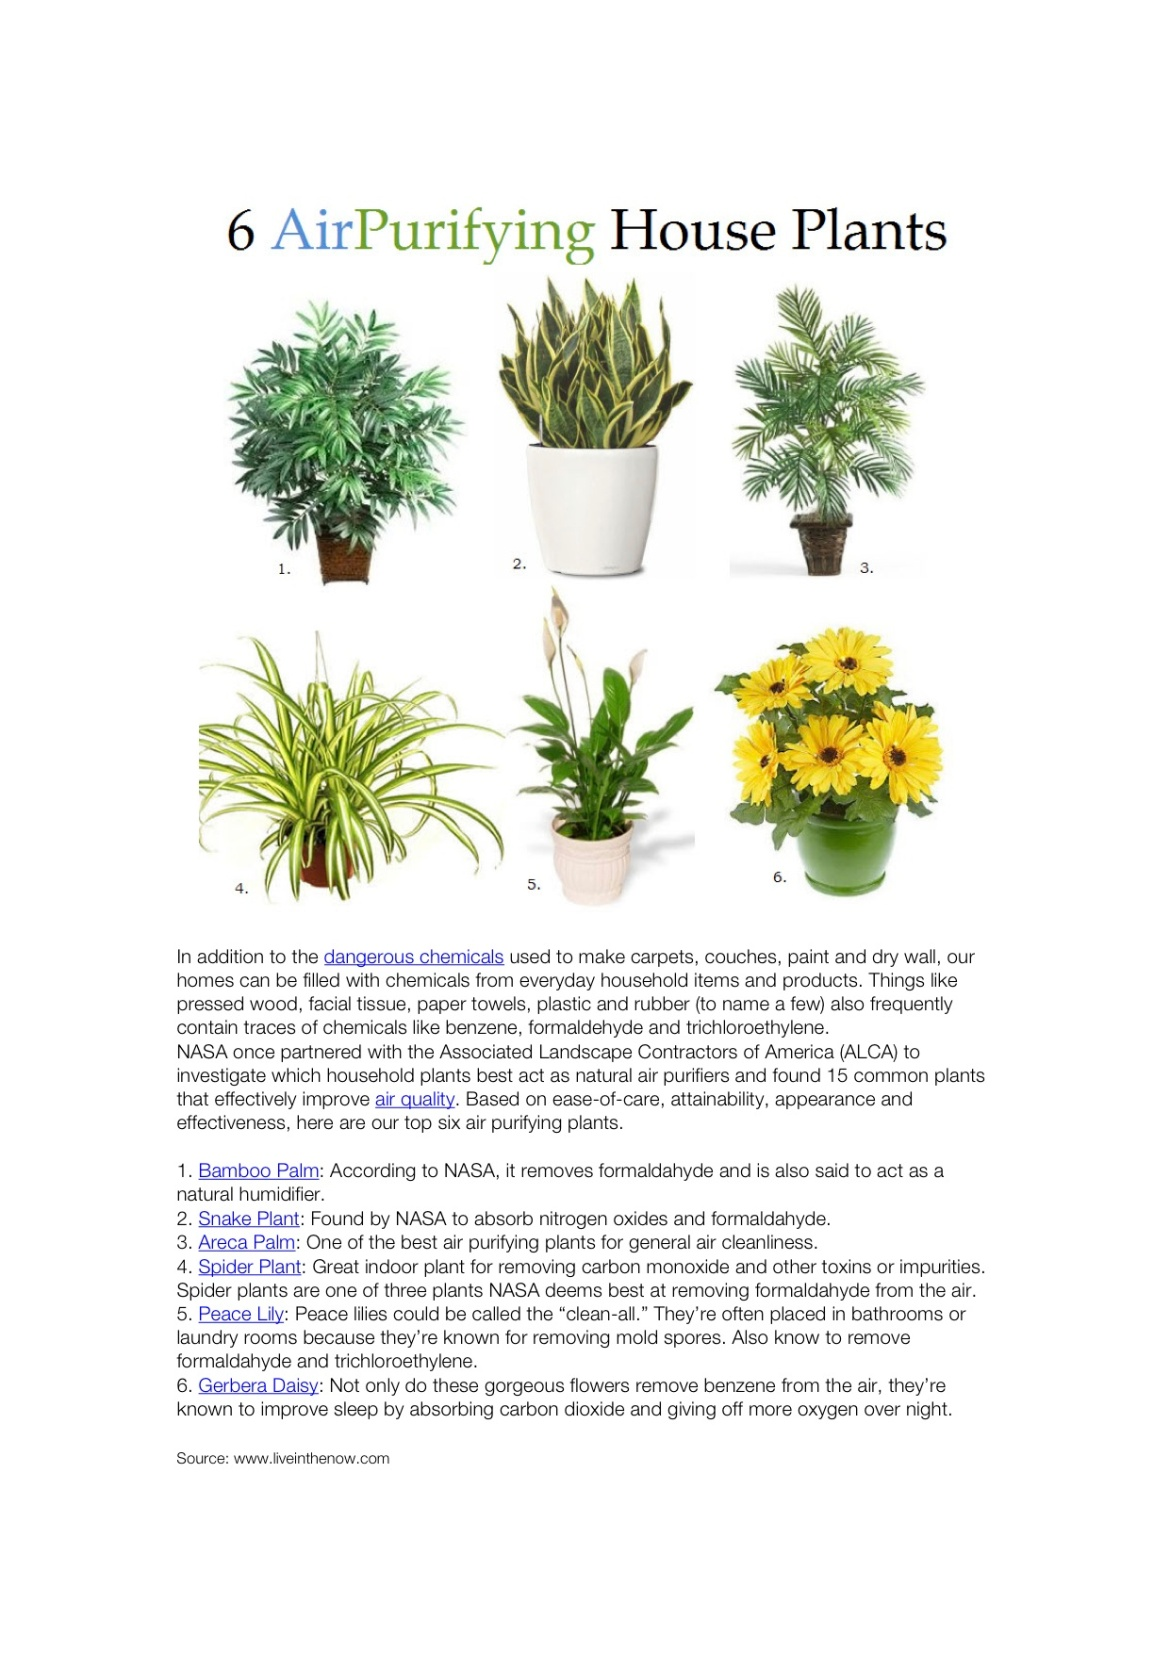 6 house plants that improve air quality according to nasa for Best plants to improve air quality